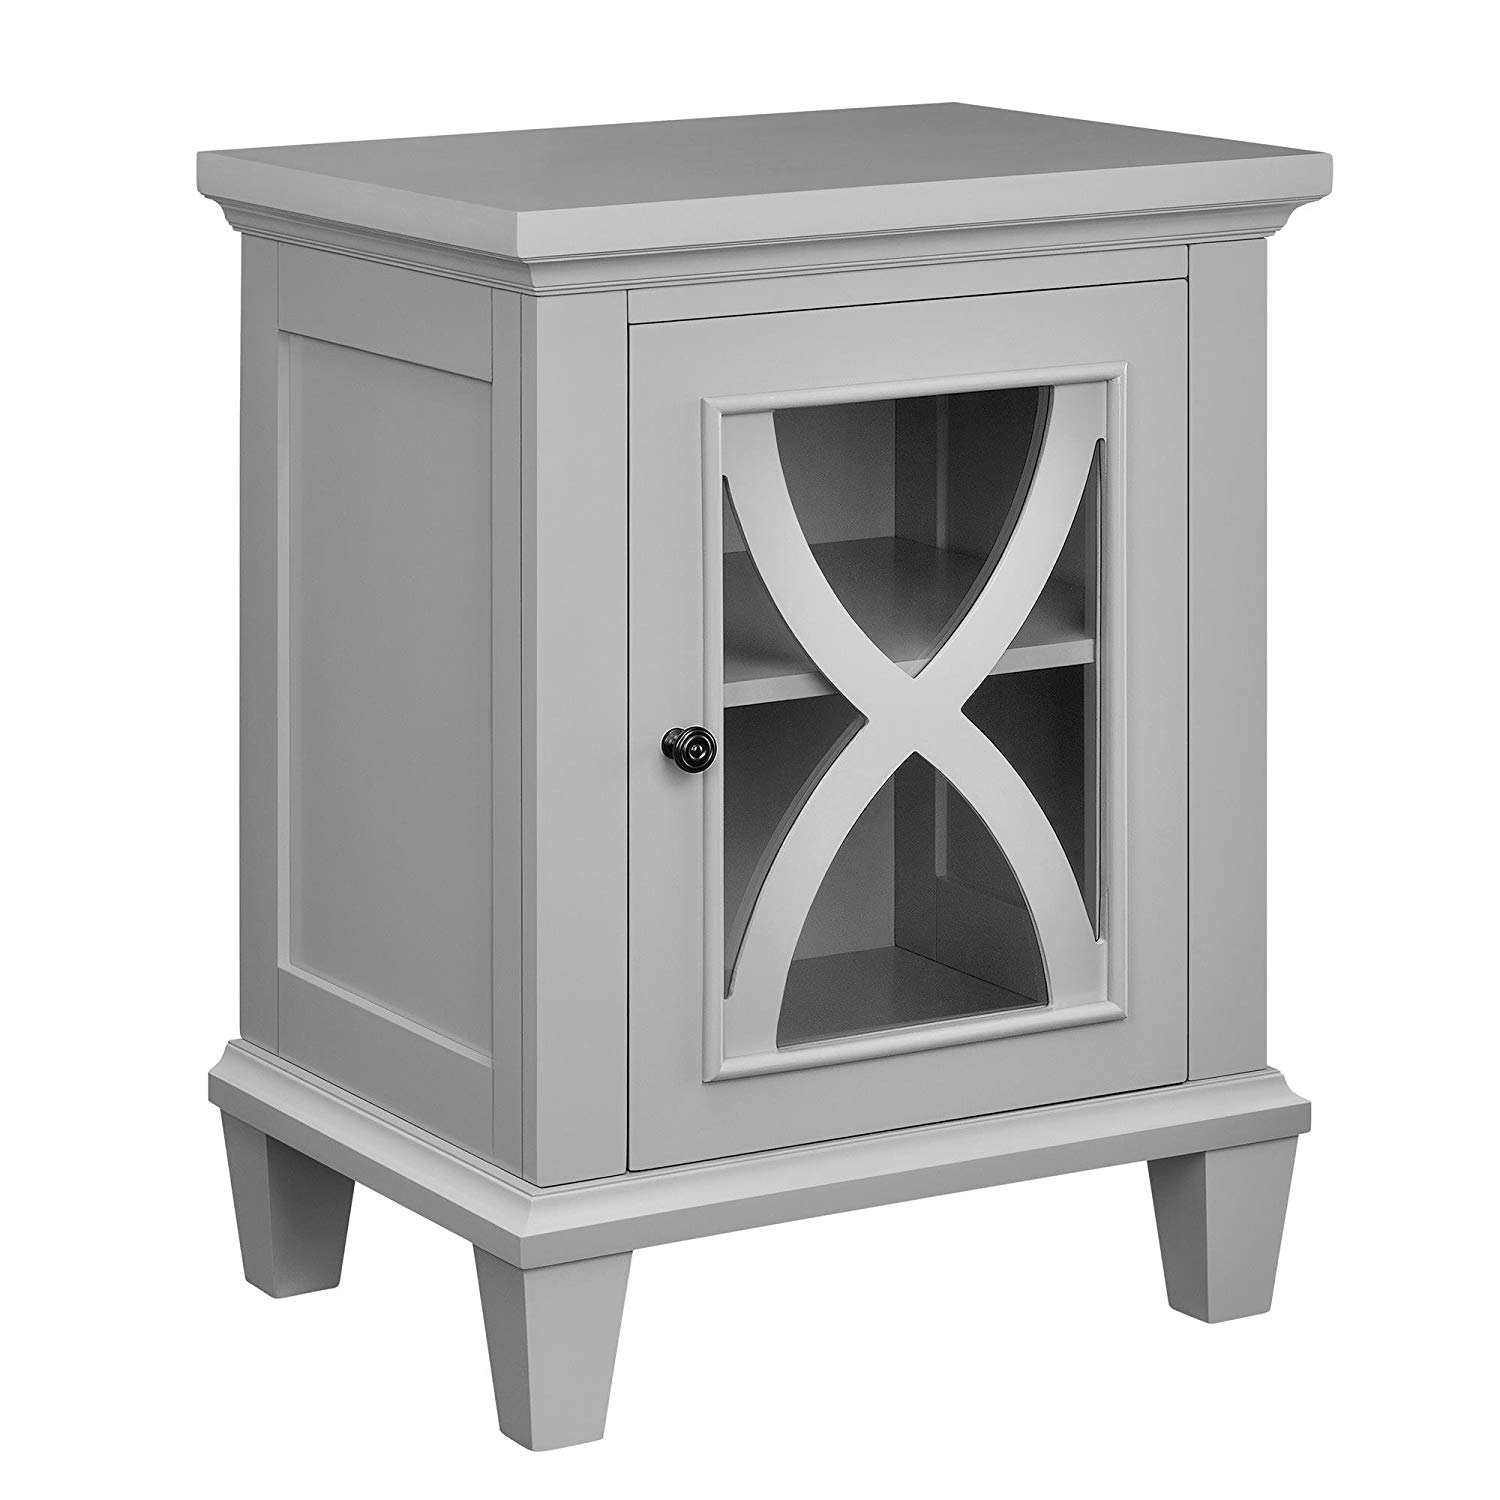 ameriwood home altra ellington single door accent fretwork table blue cabinet gray kitchen dining small coffee legs ceramic square fall tablecloth outdoor drum side west elm free